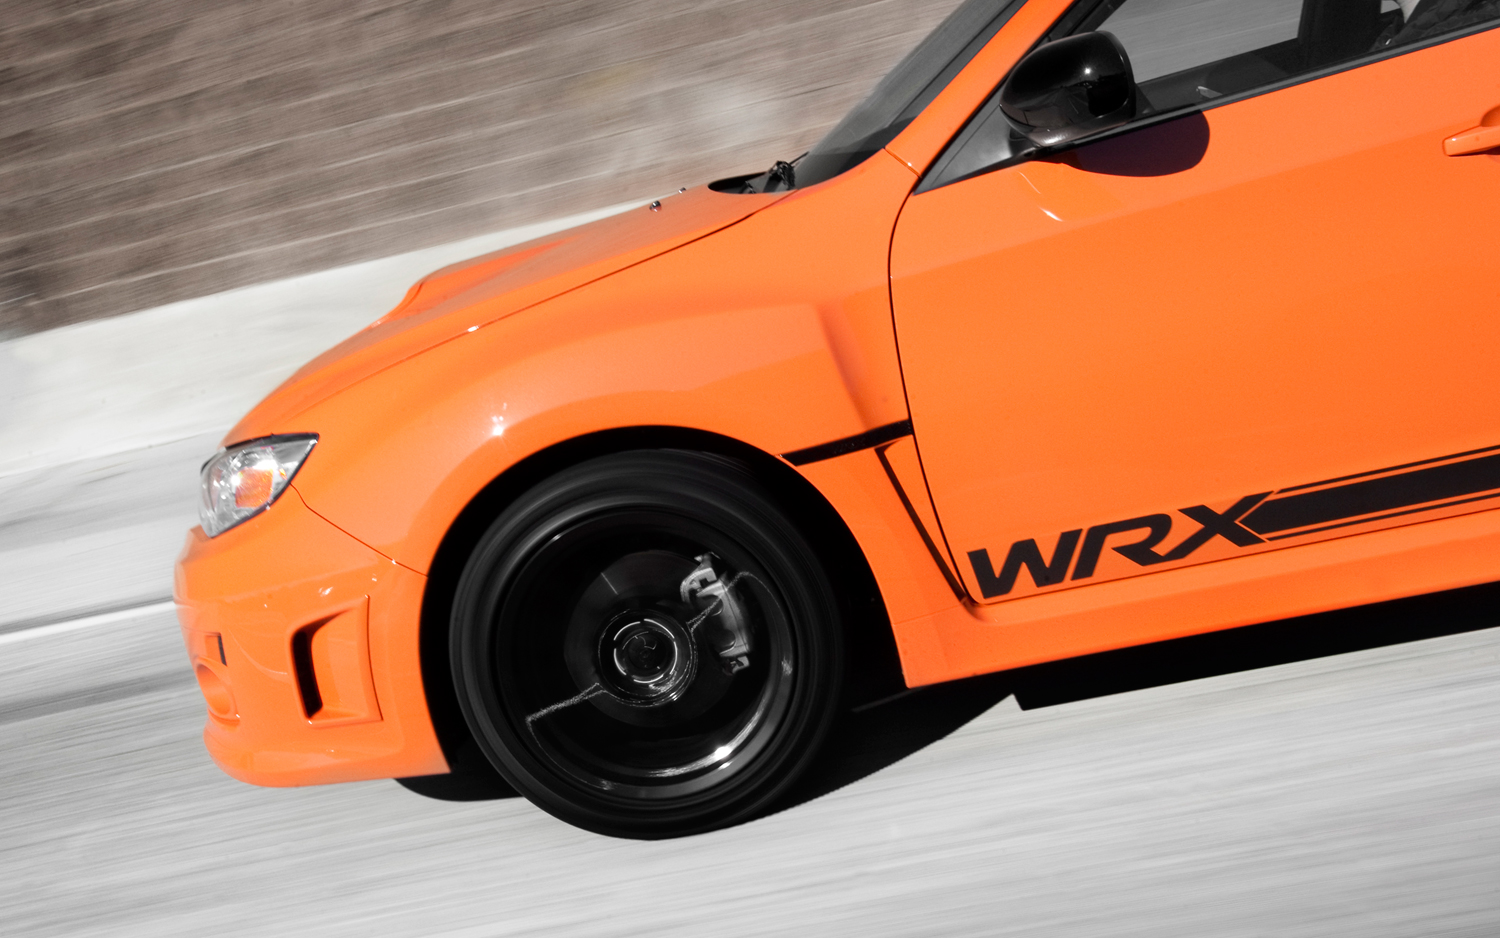 2013 Subaru Impreza WRX Special Edition photo - 2